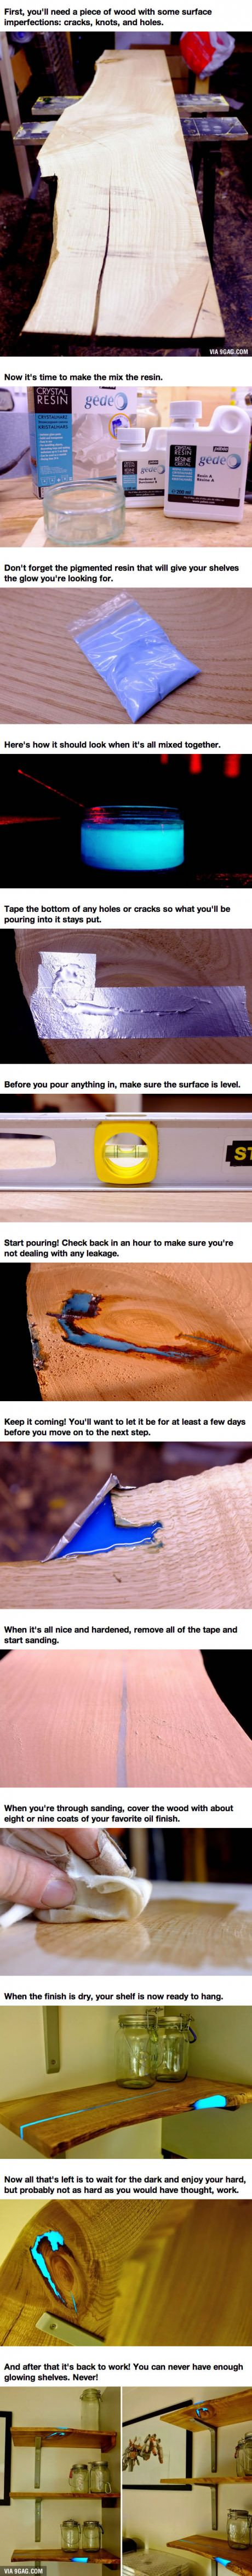 DIY Awesome Glowing Shelves Are Easy To Make!   diy   Pinterest ...